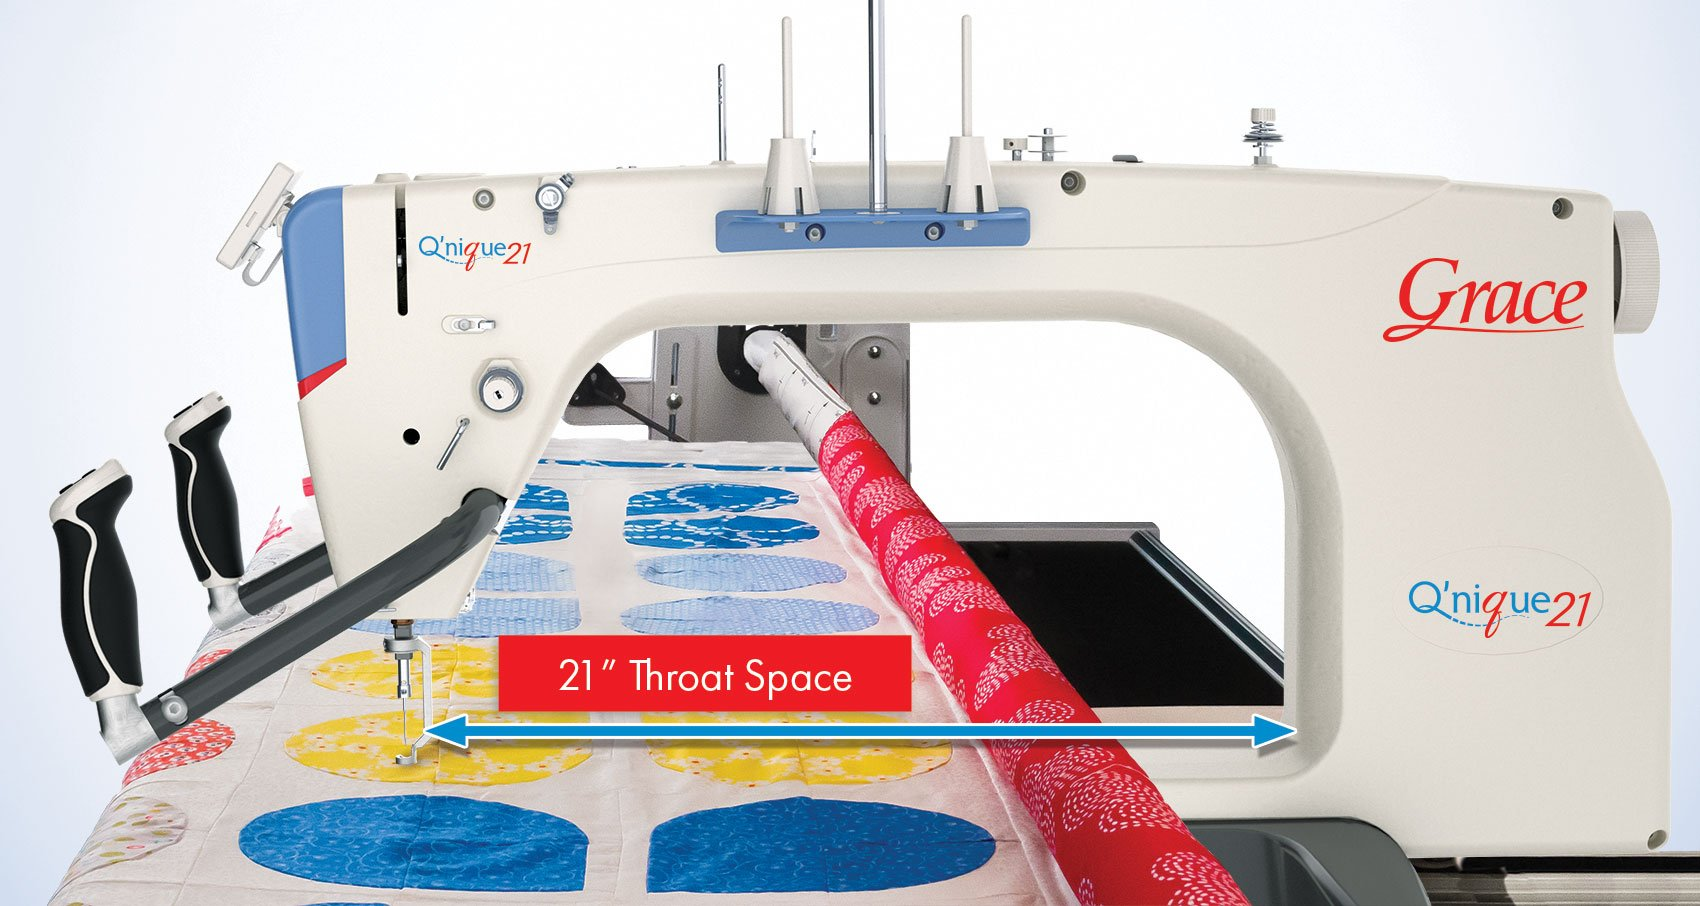 Q'nique 21 inch throat space longarm quilting machine